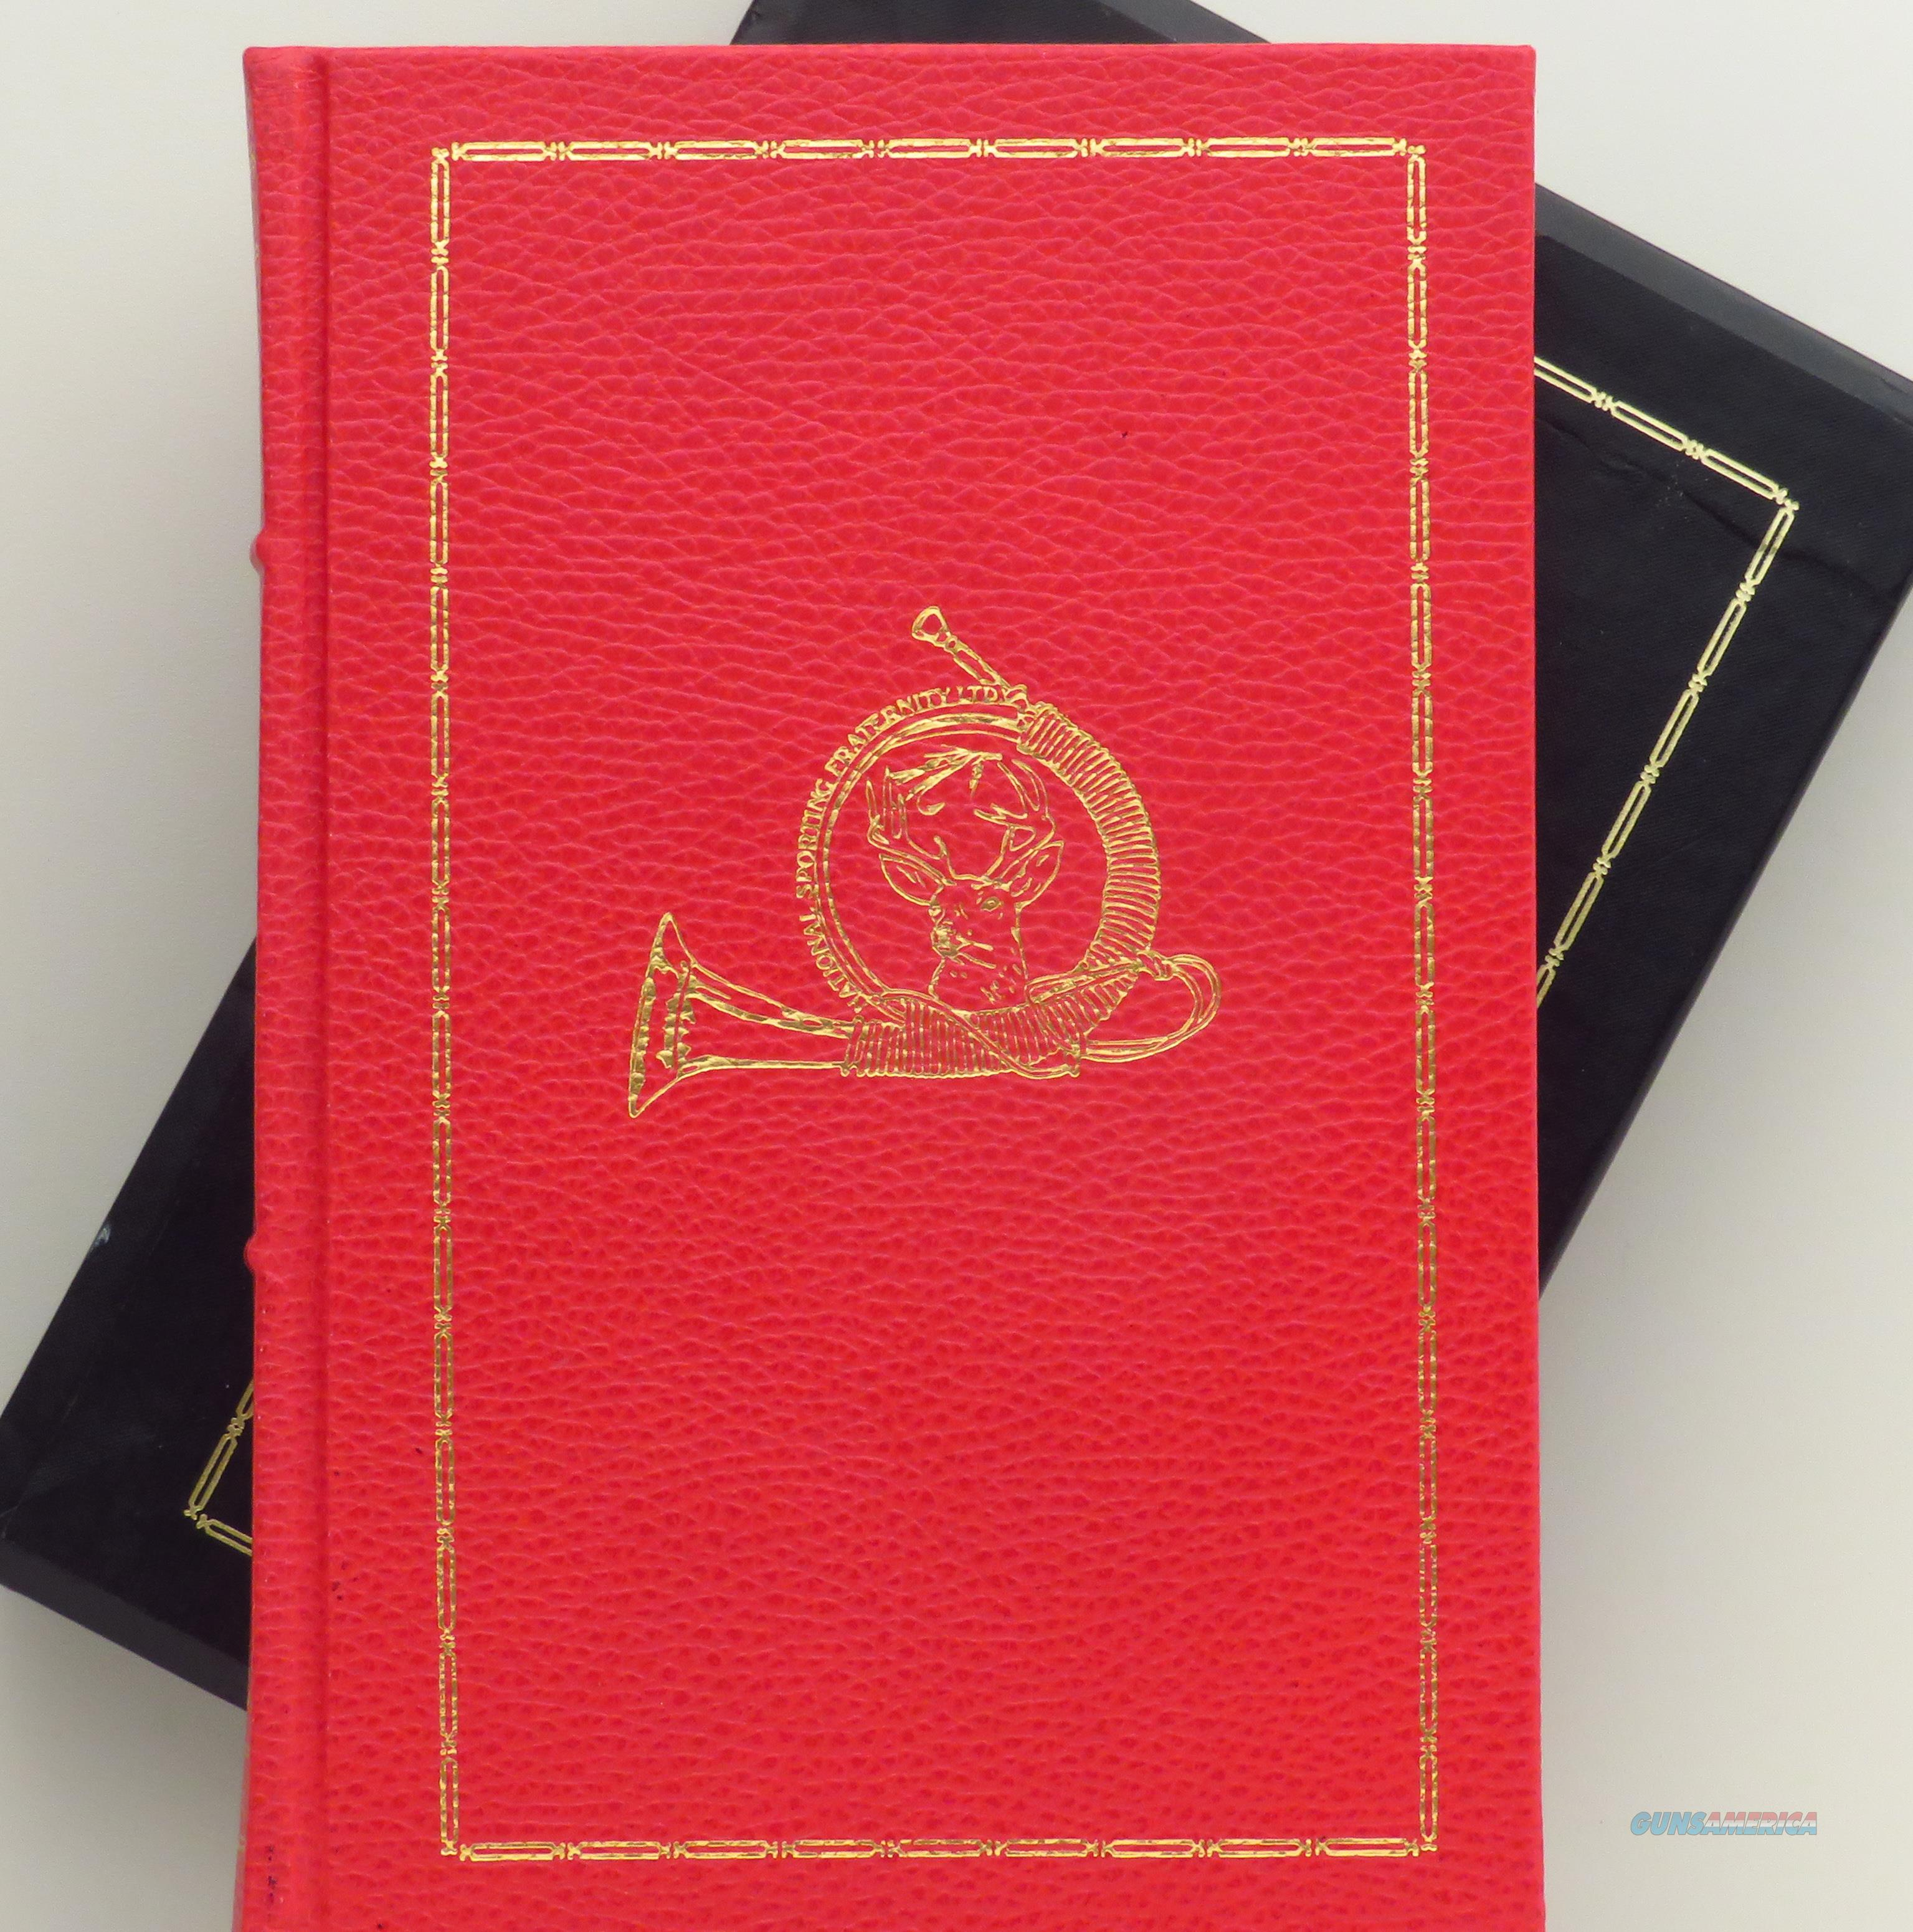 The Best of Colonel Townsend Whelen, Amwell Press limited edition, 30/1000, leather, gilded, ribbon, slip  Non-Guns > Books & Magazines